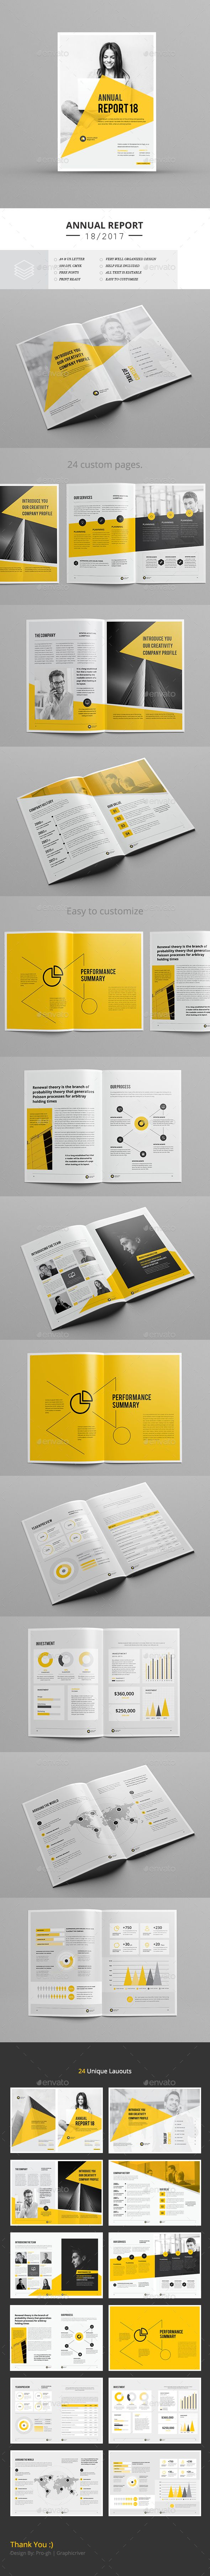 Annual Report Template — InDesign INDD #yellow #a4 • Download ➝ https://graphicriver.net/item/annual-report-template/19863754?ref=pxcr